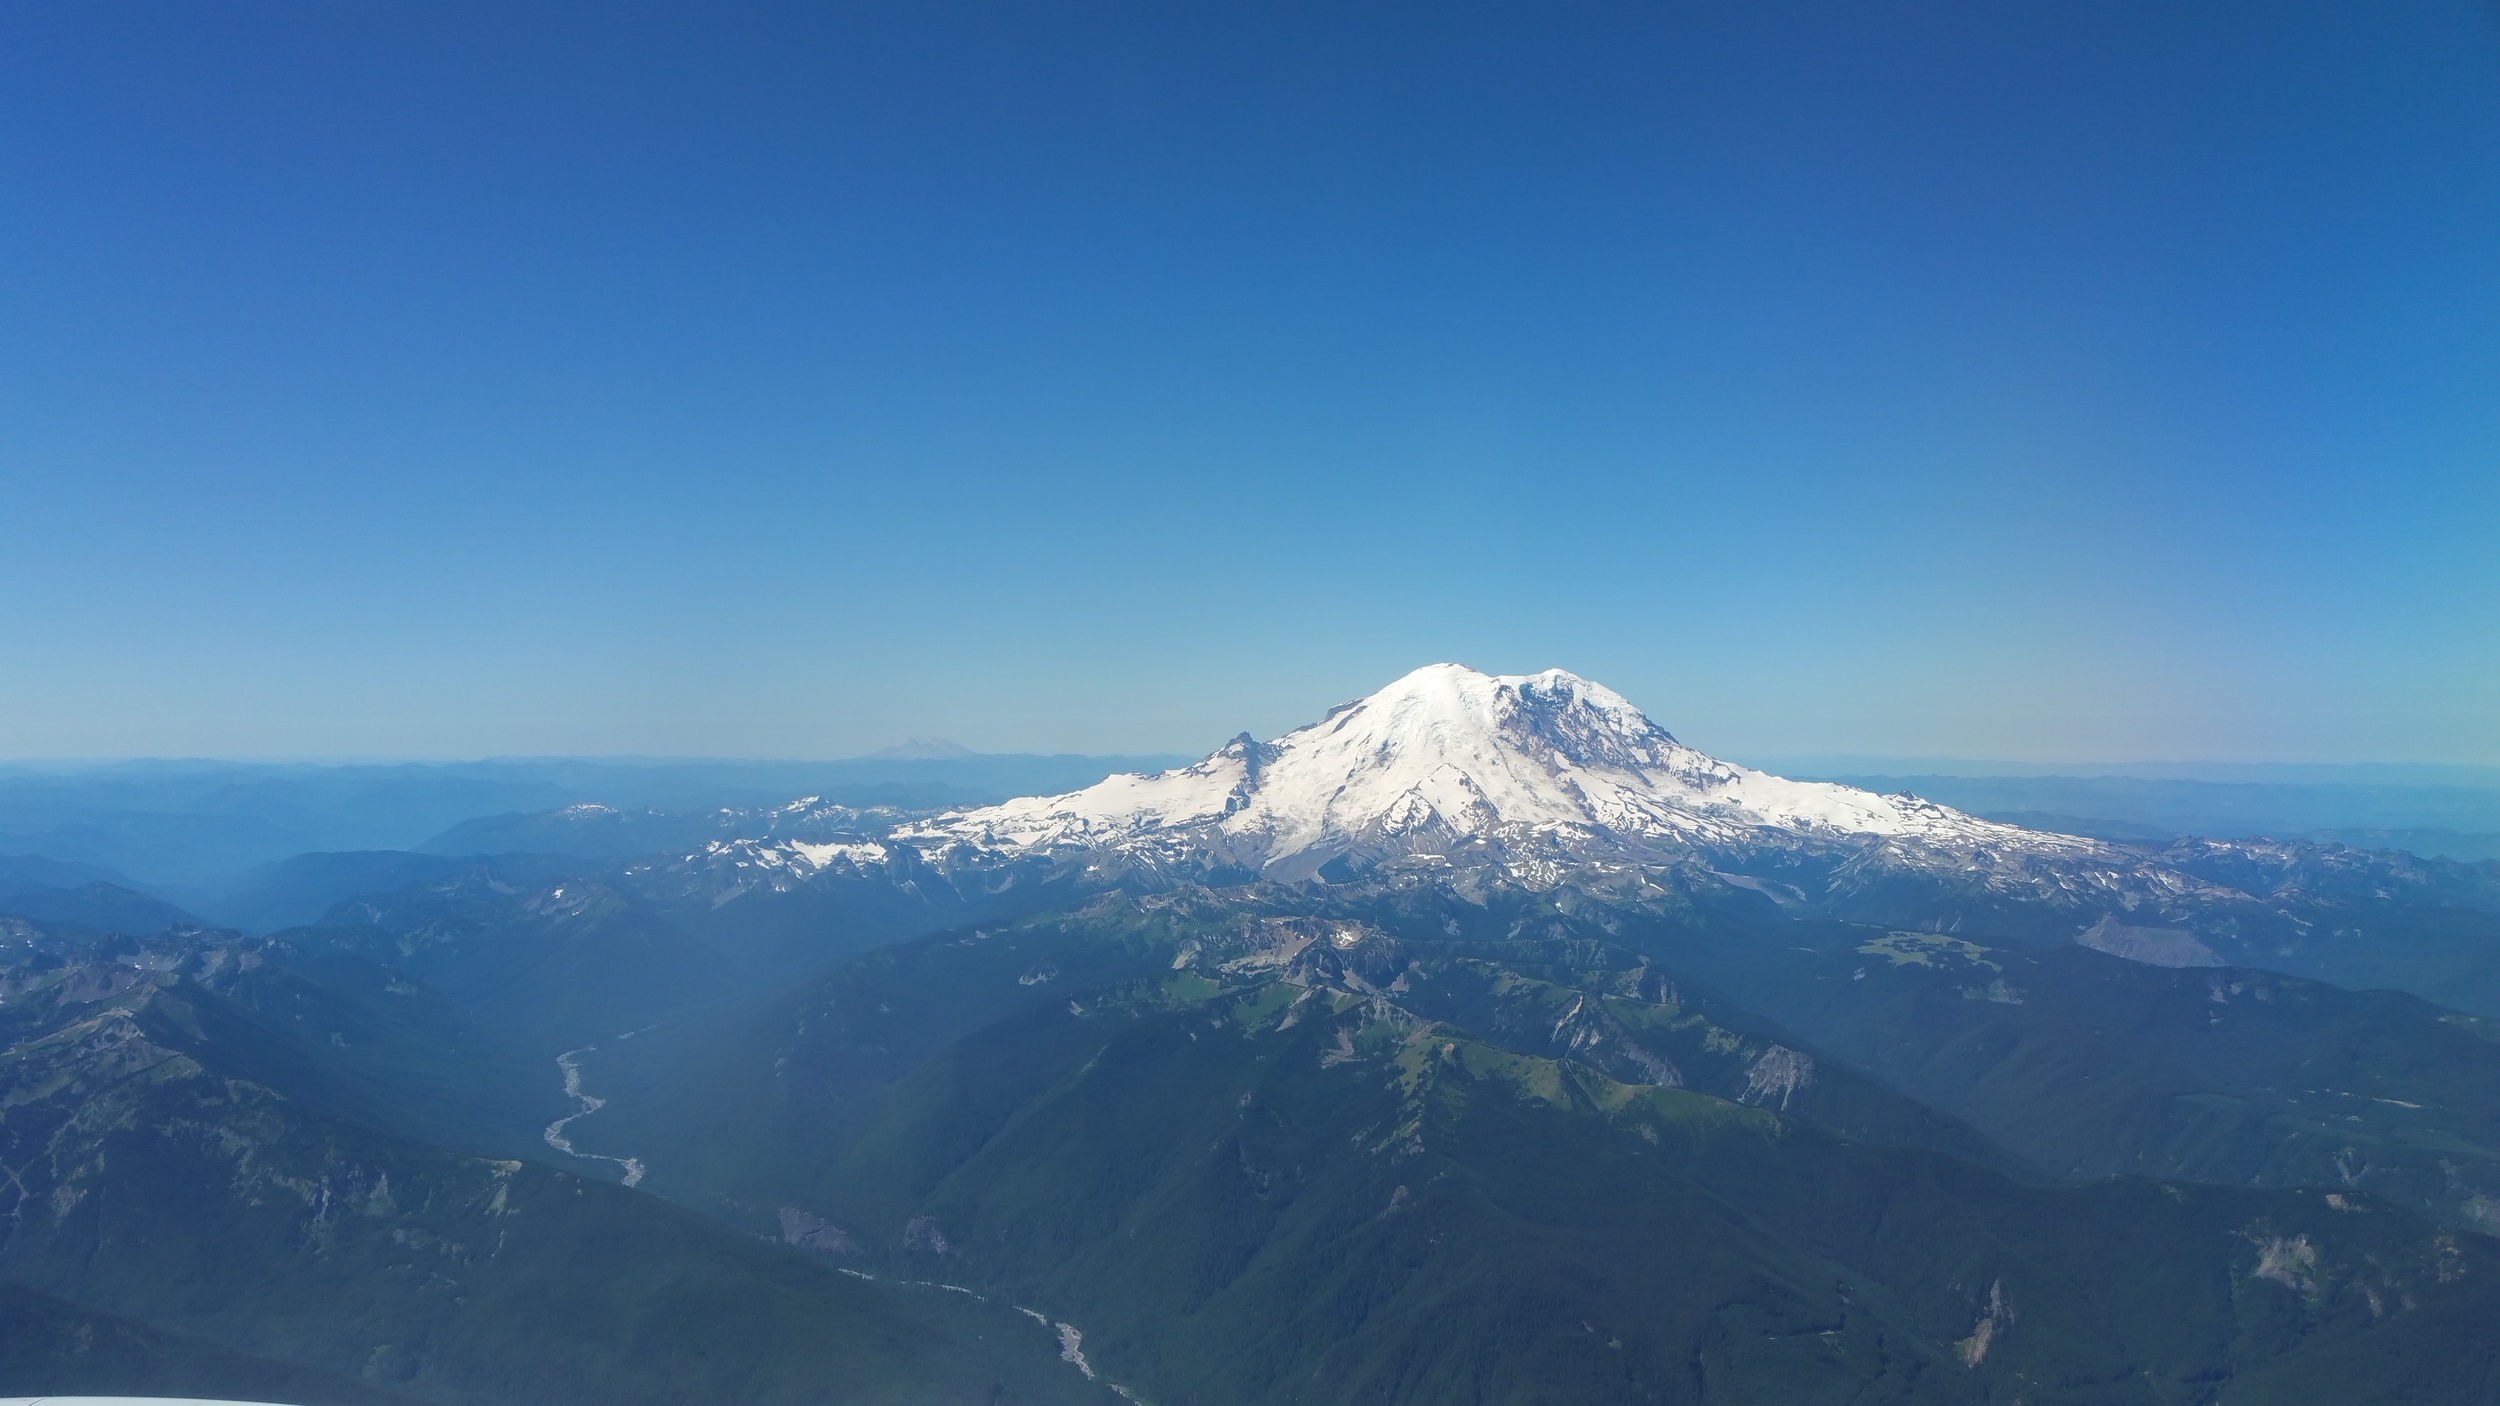 Mt. Rainier approaching Seattle-Tacoma International Airport.